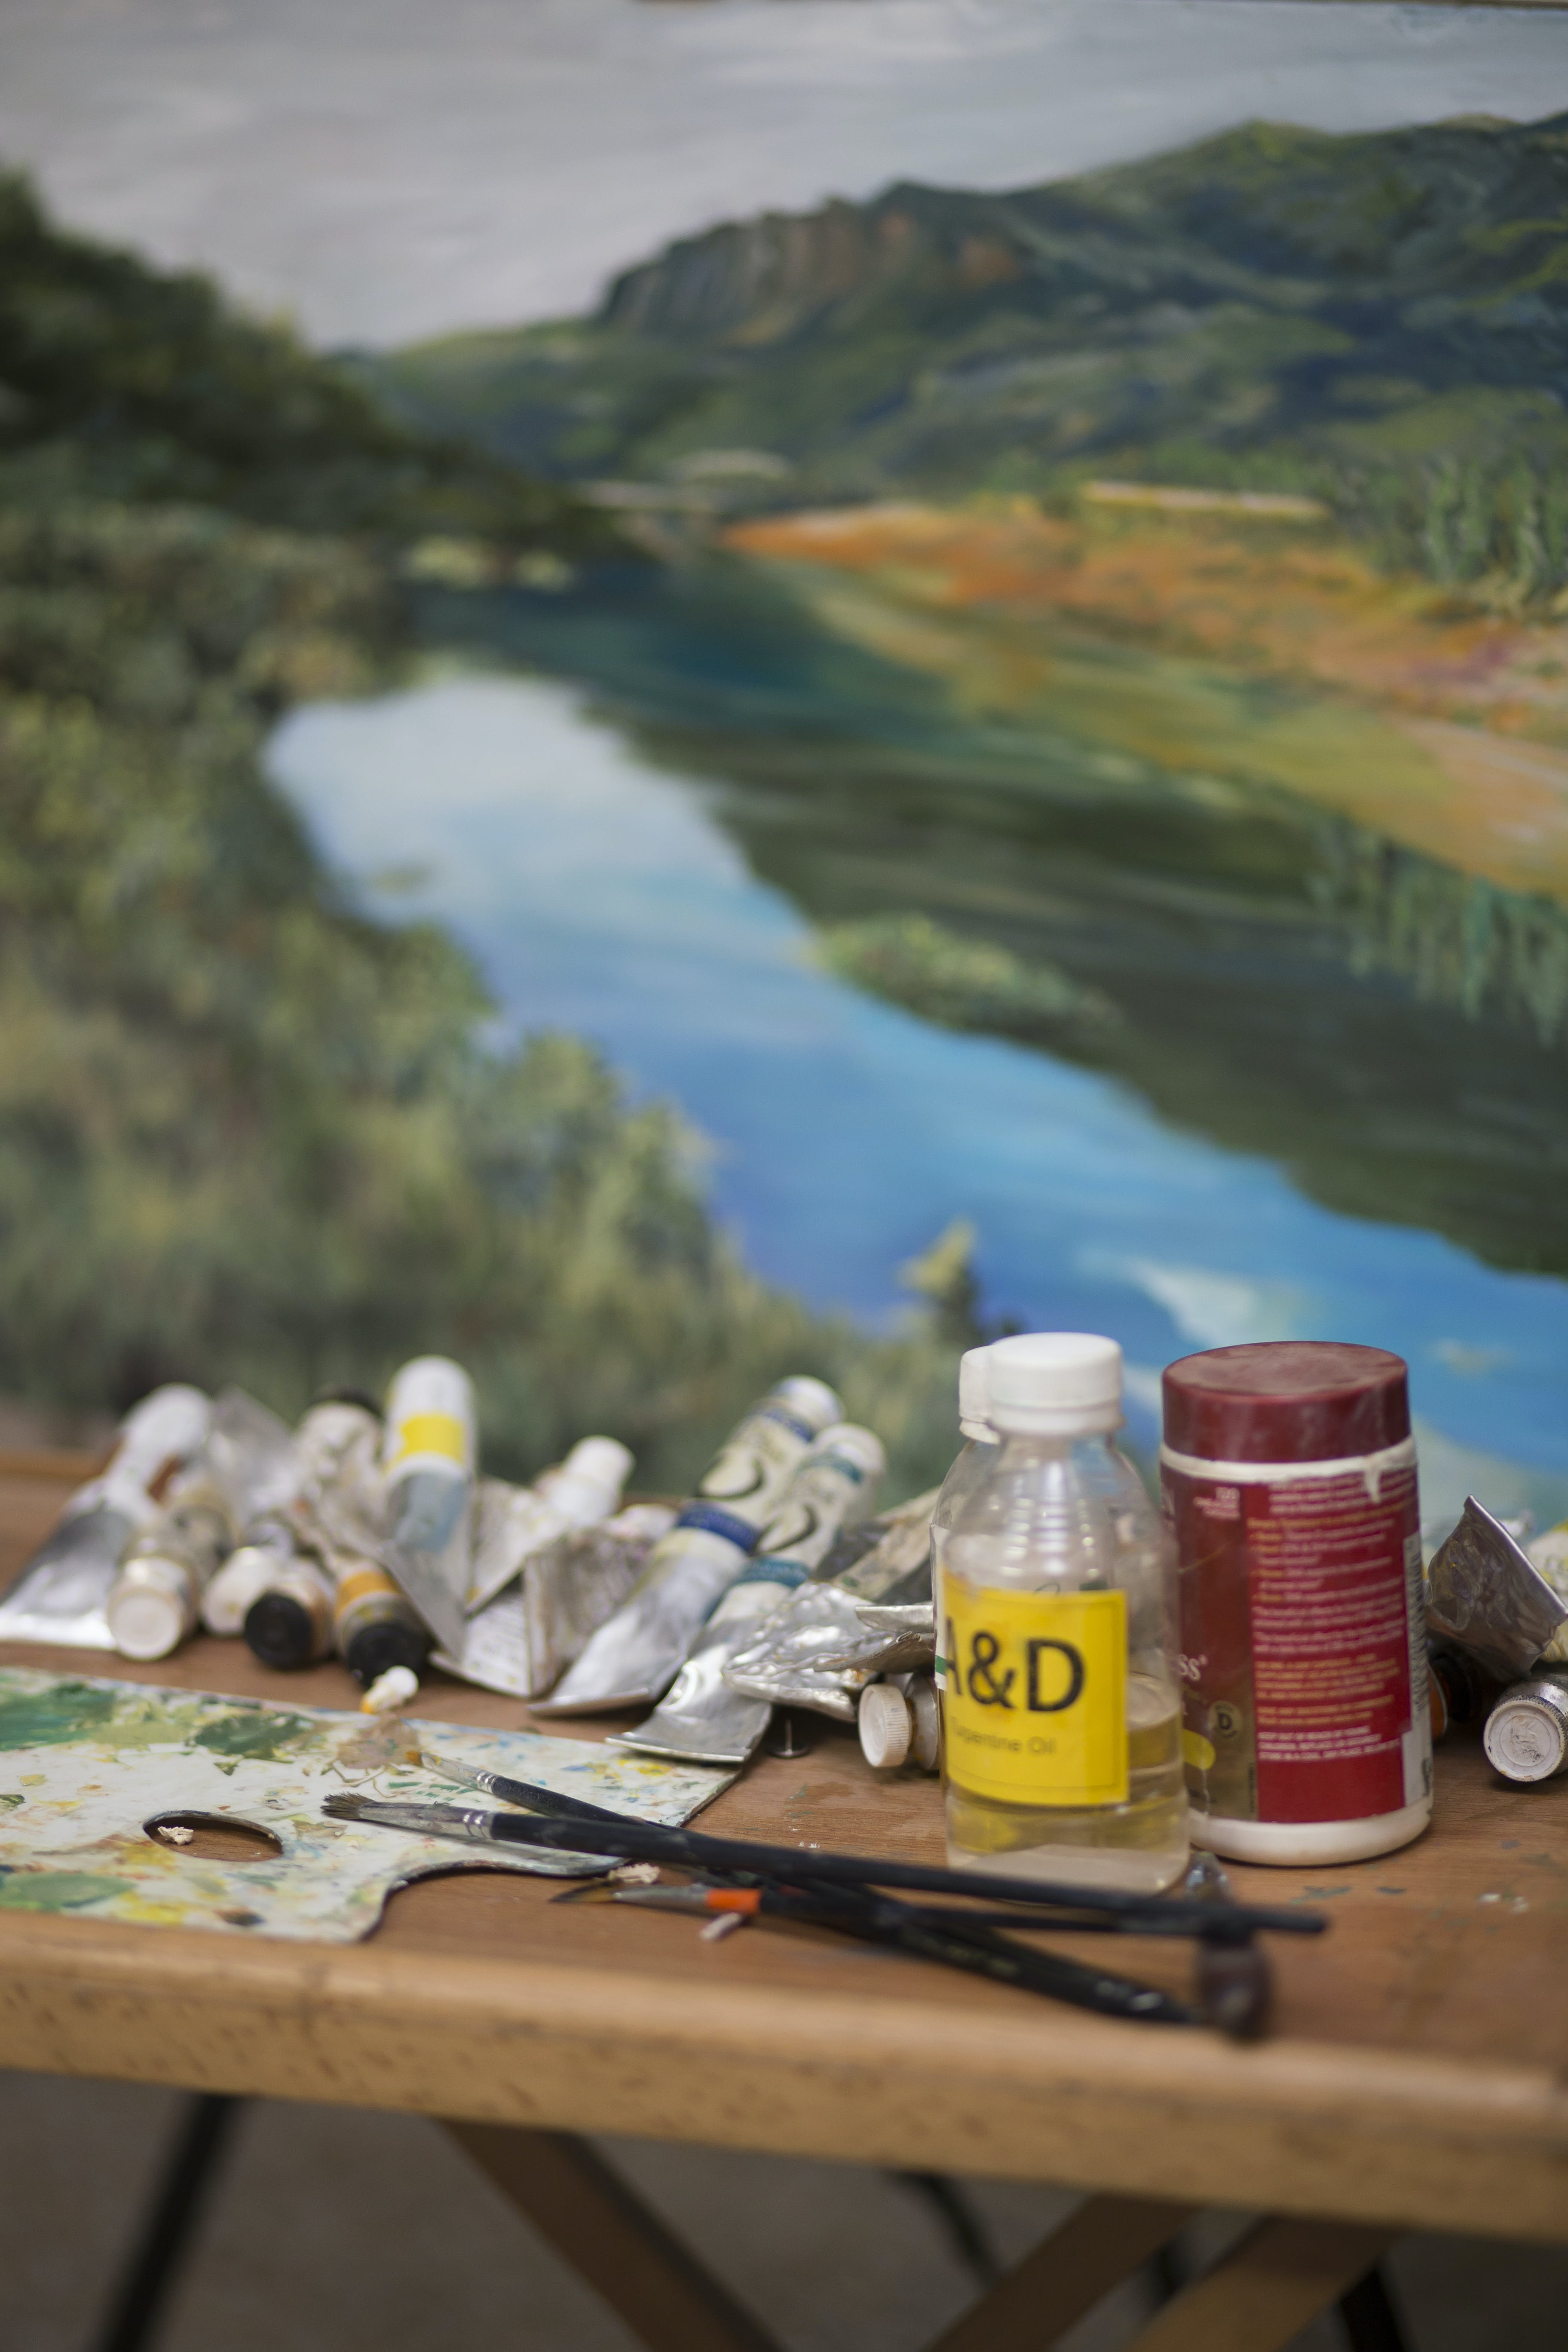 Free stock photo of art, brushes, painting, paints